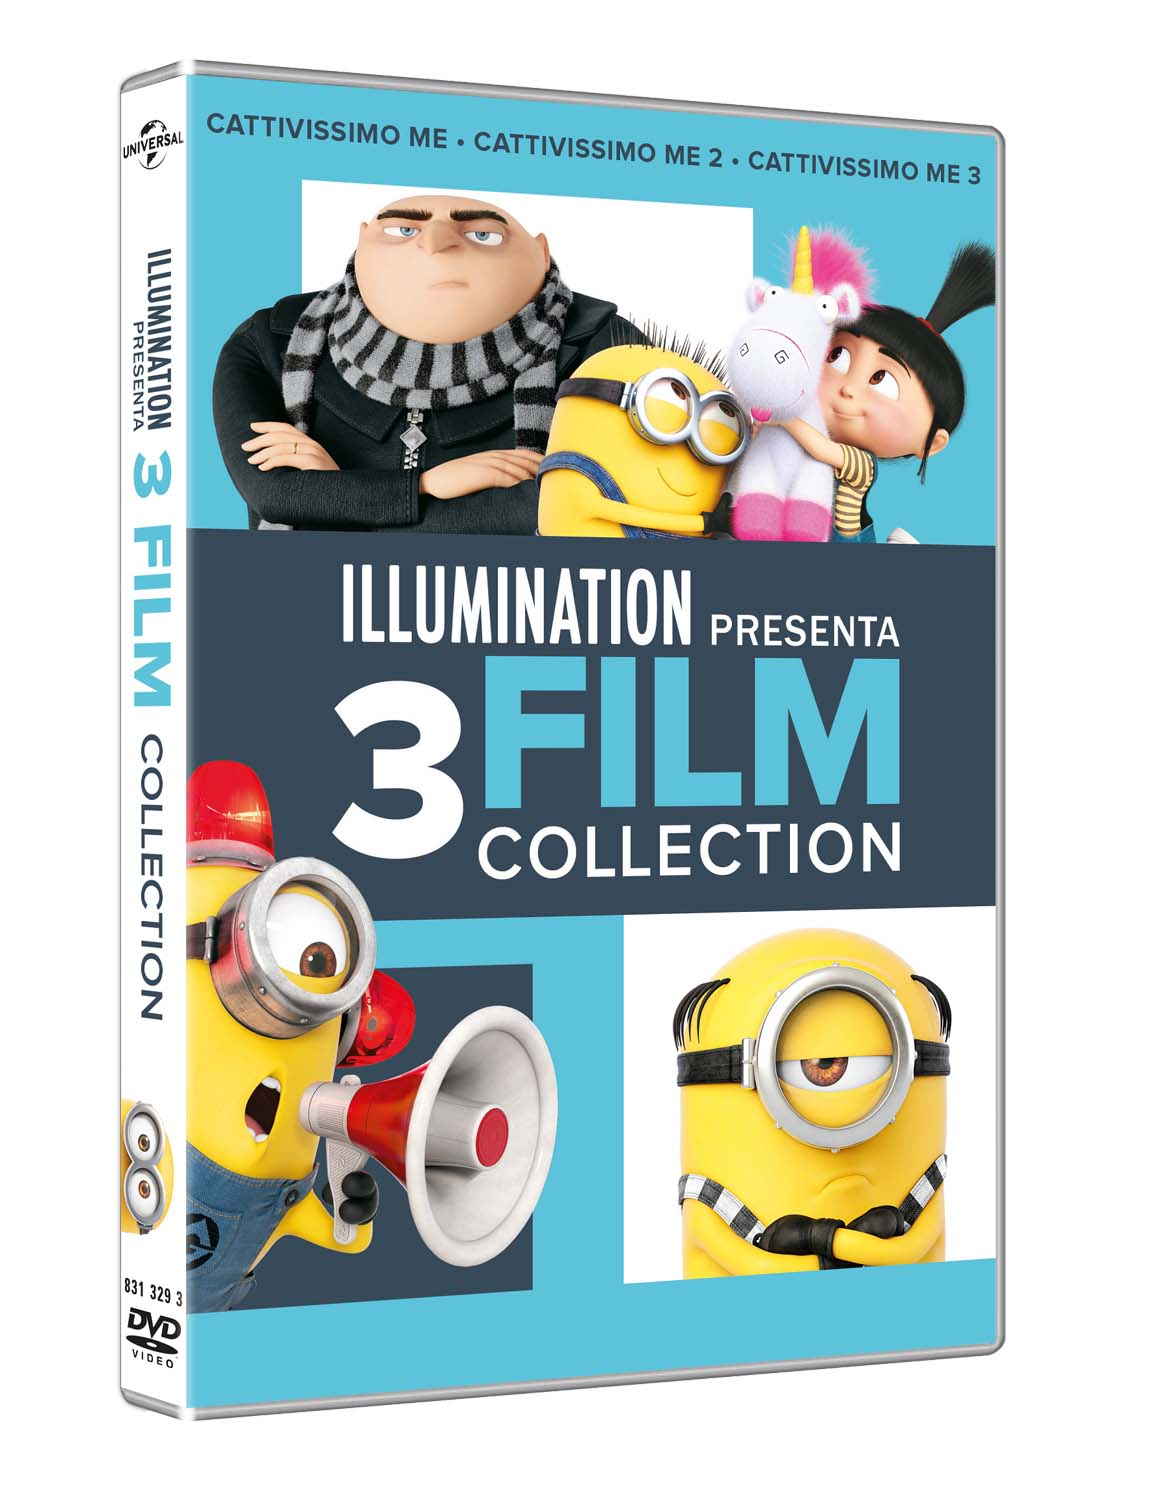 COF.CATTIVISSIMO ME 3 MOVIES COLLECTION (3 DVD) (DVD)